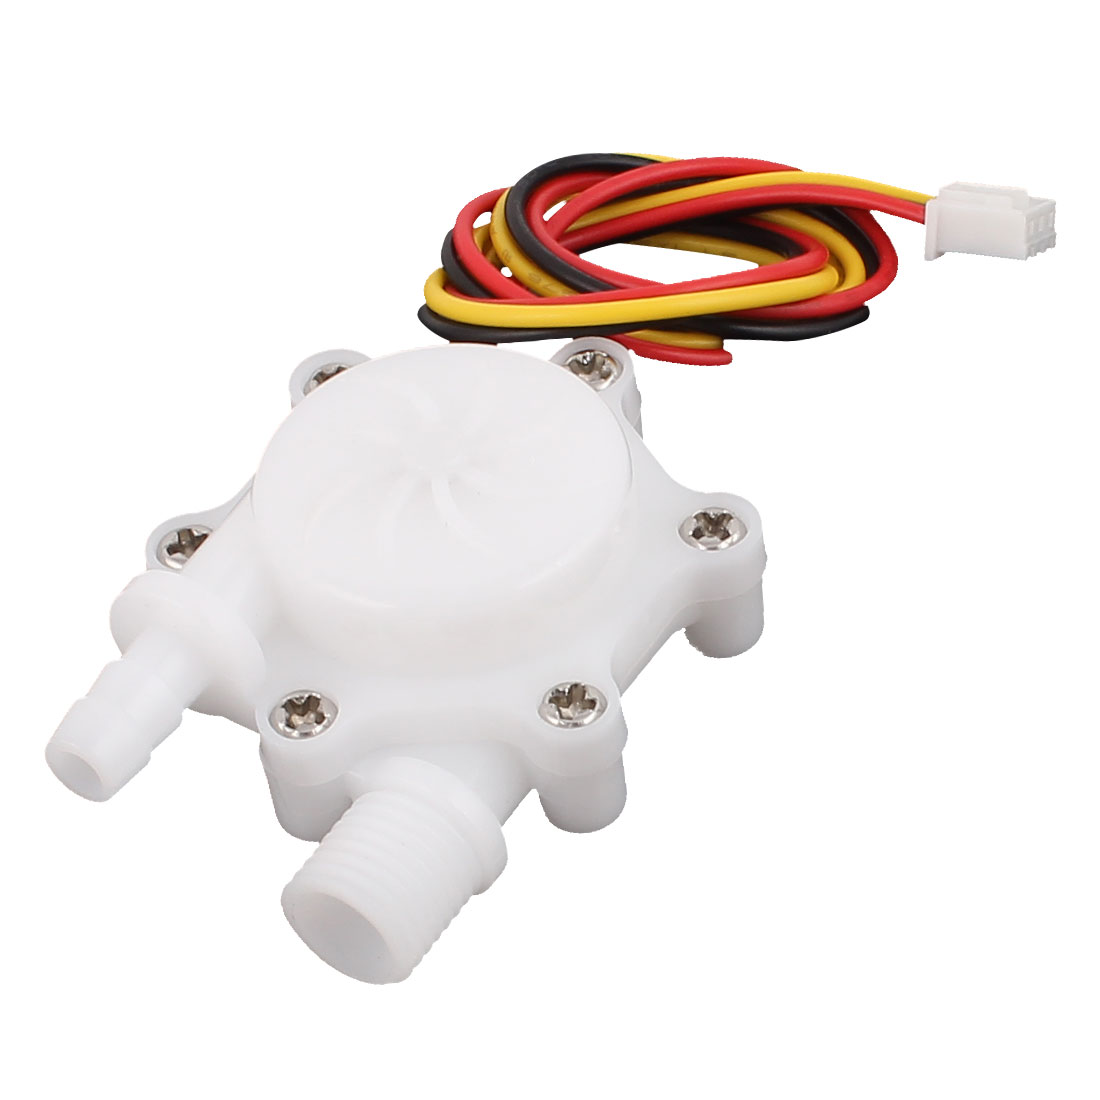 0.3-4.0L/min G1/4 Thread 6mm OD Hall Effect Water Flow Counter Sensor SEN-HW06FB